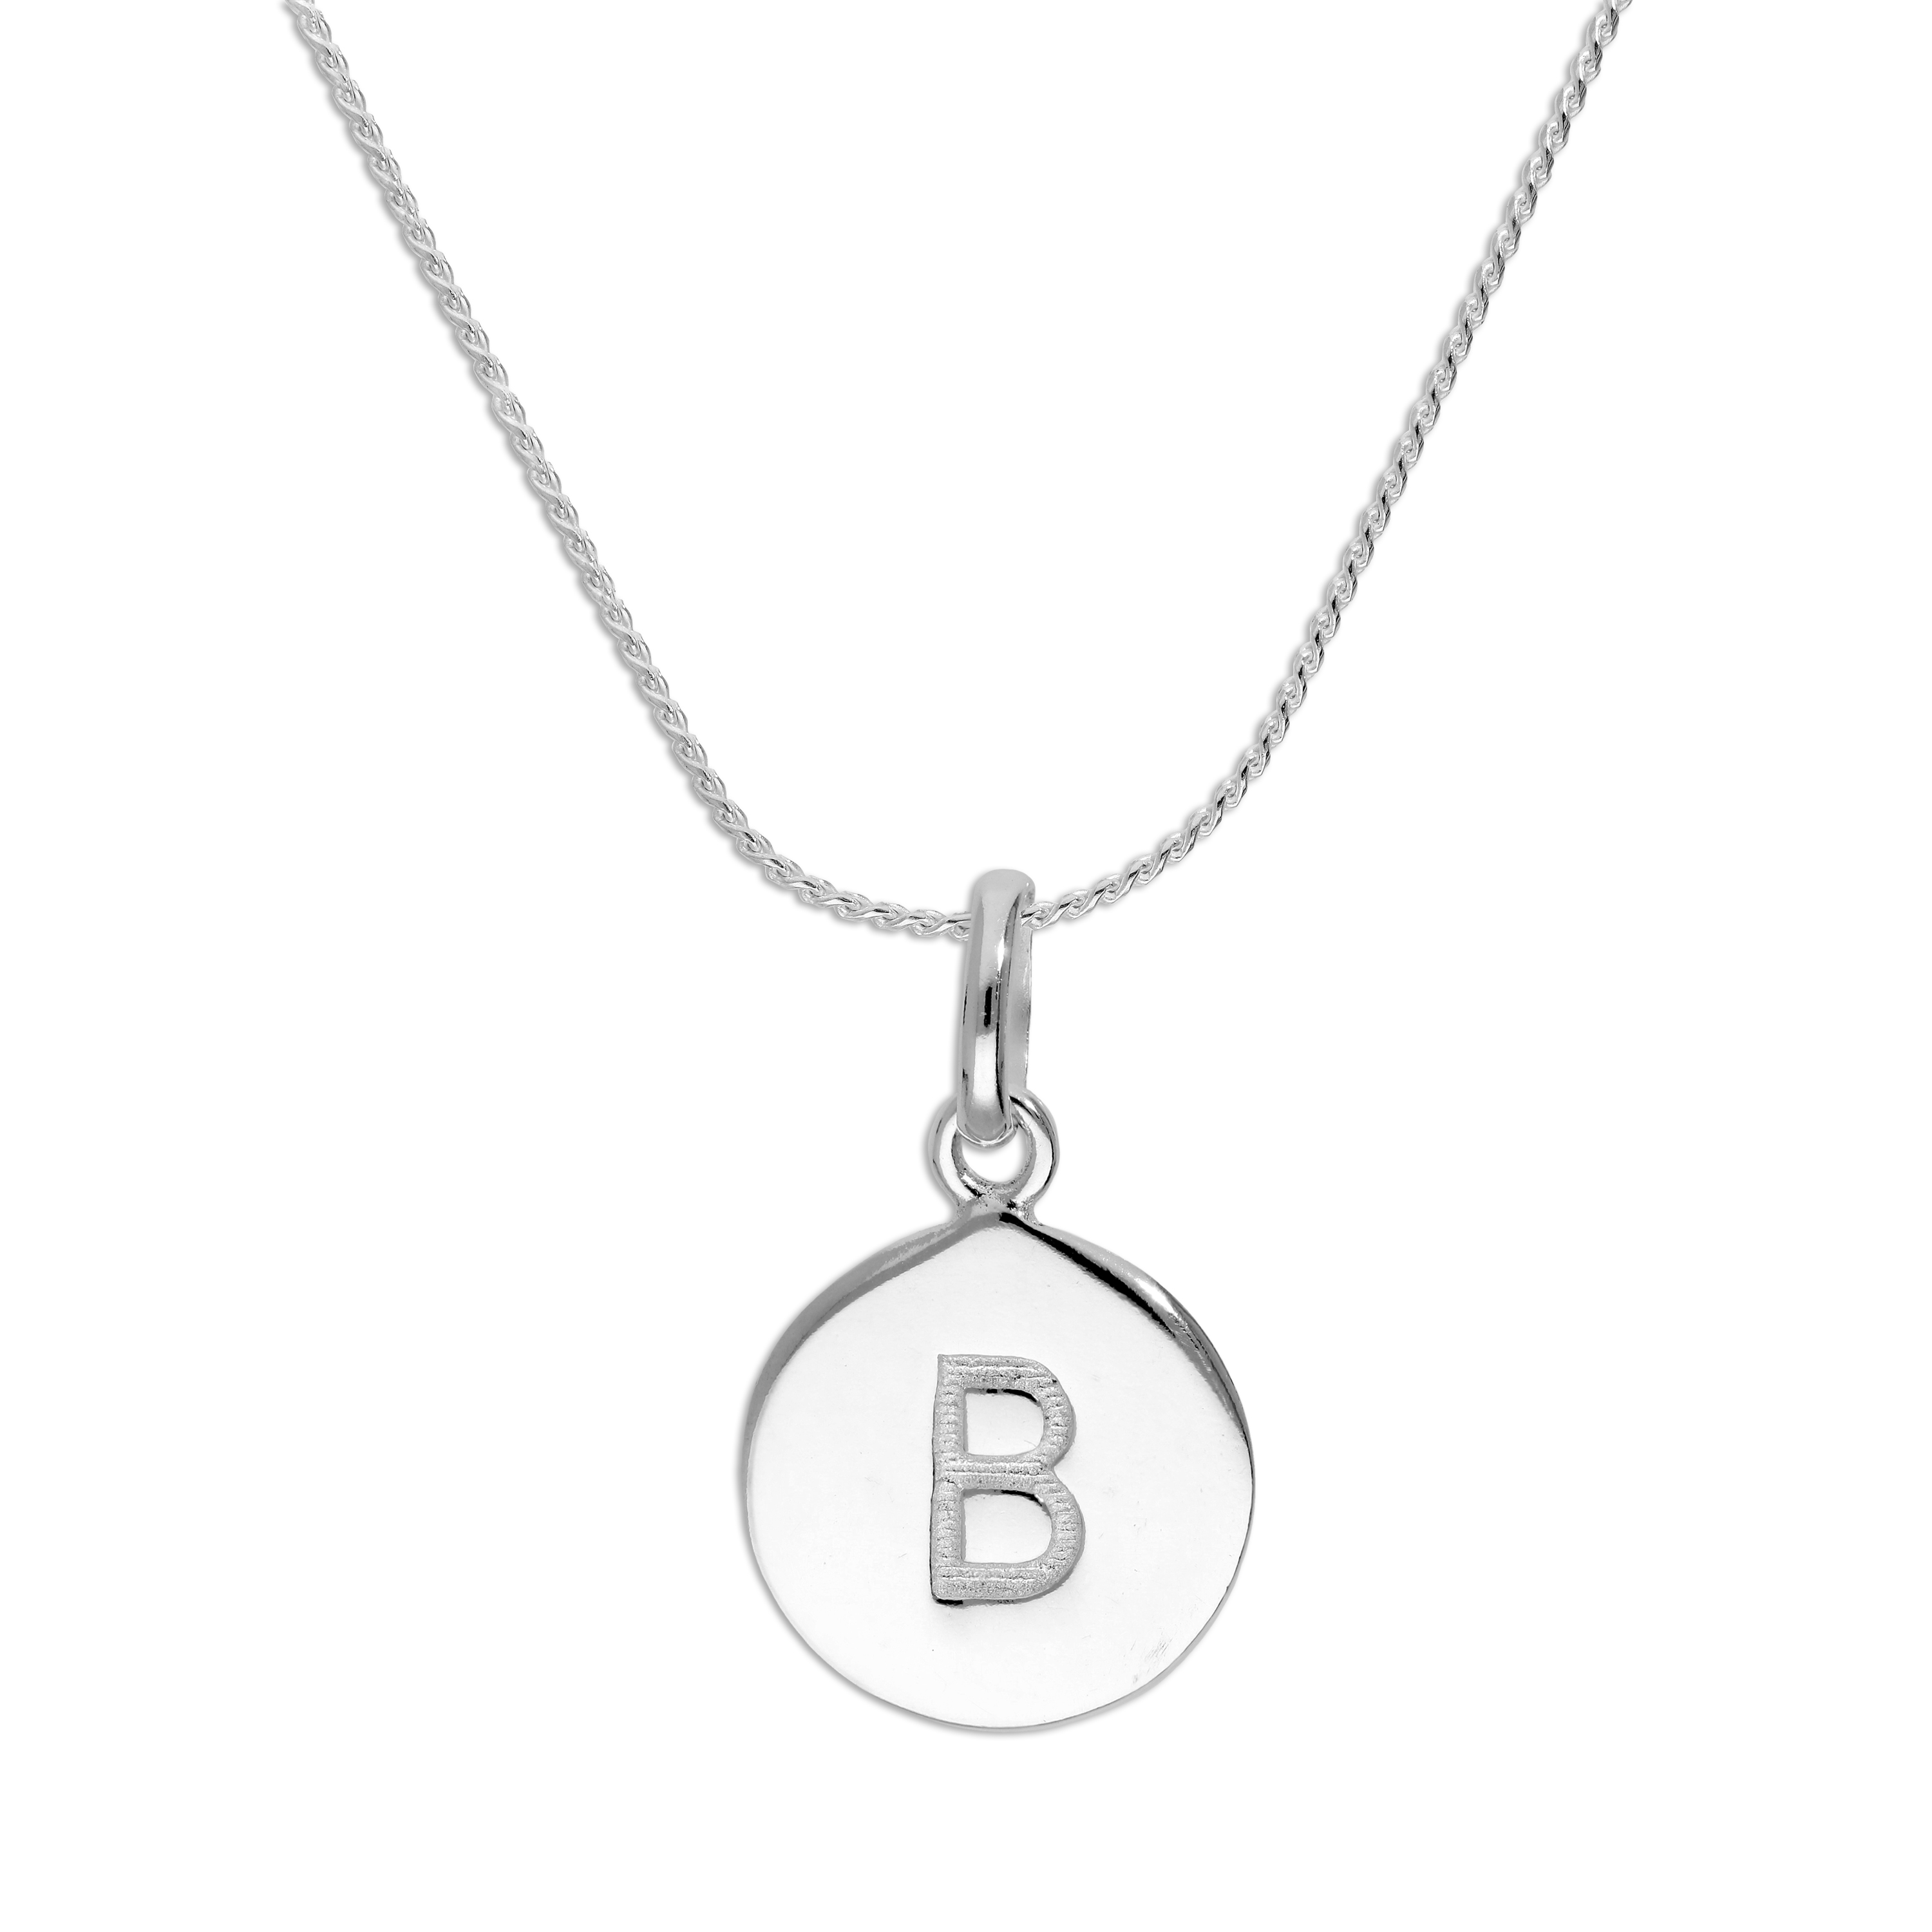 An image of Sterling Silver Initial Letter B Necklace 18 Inches Blue